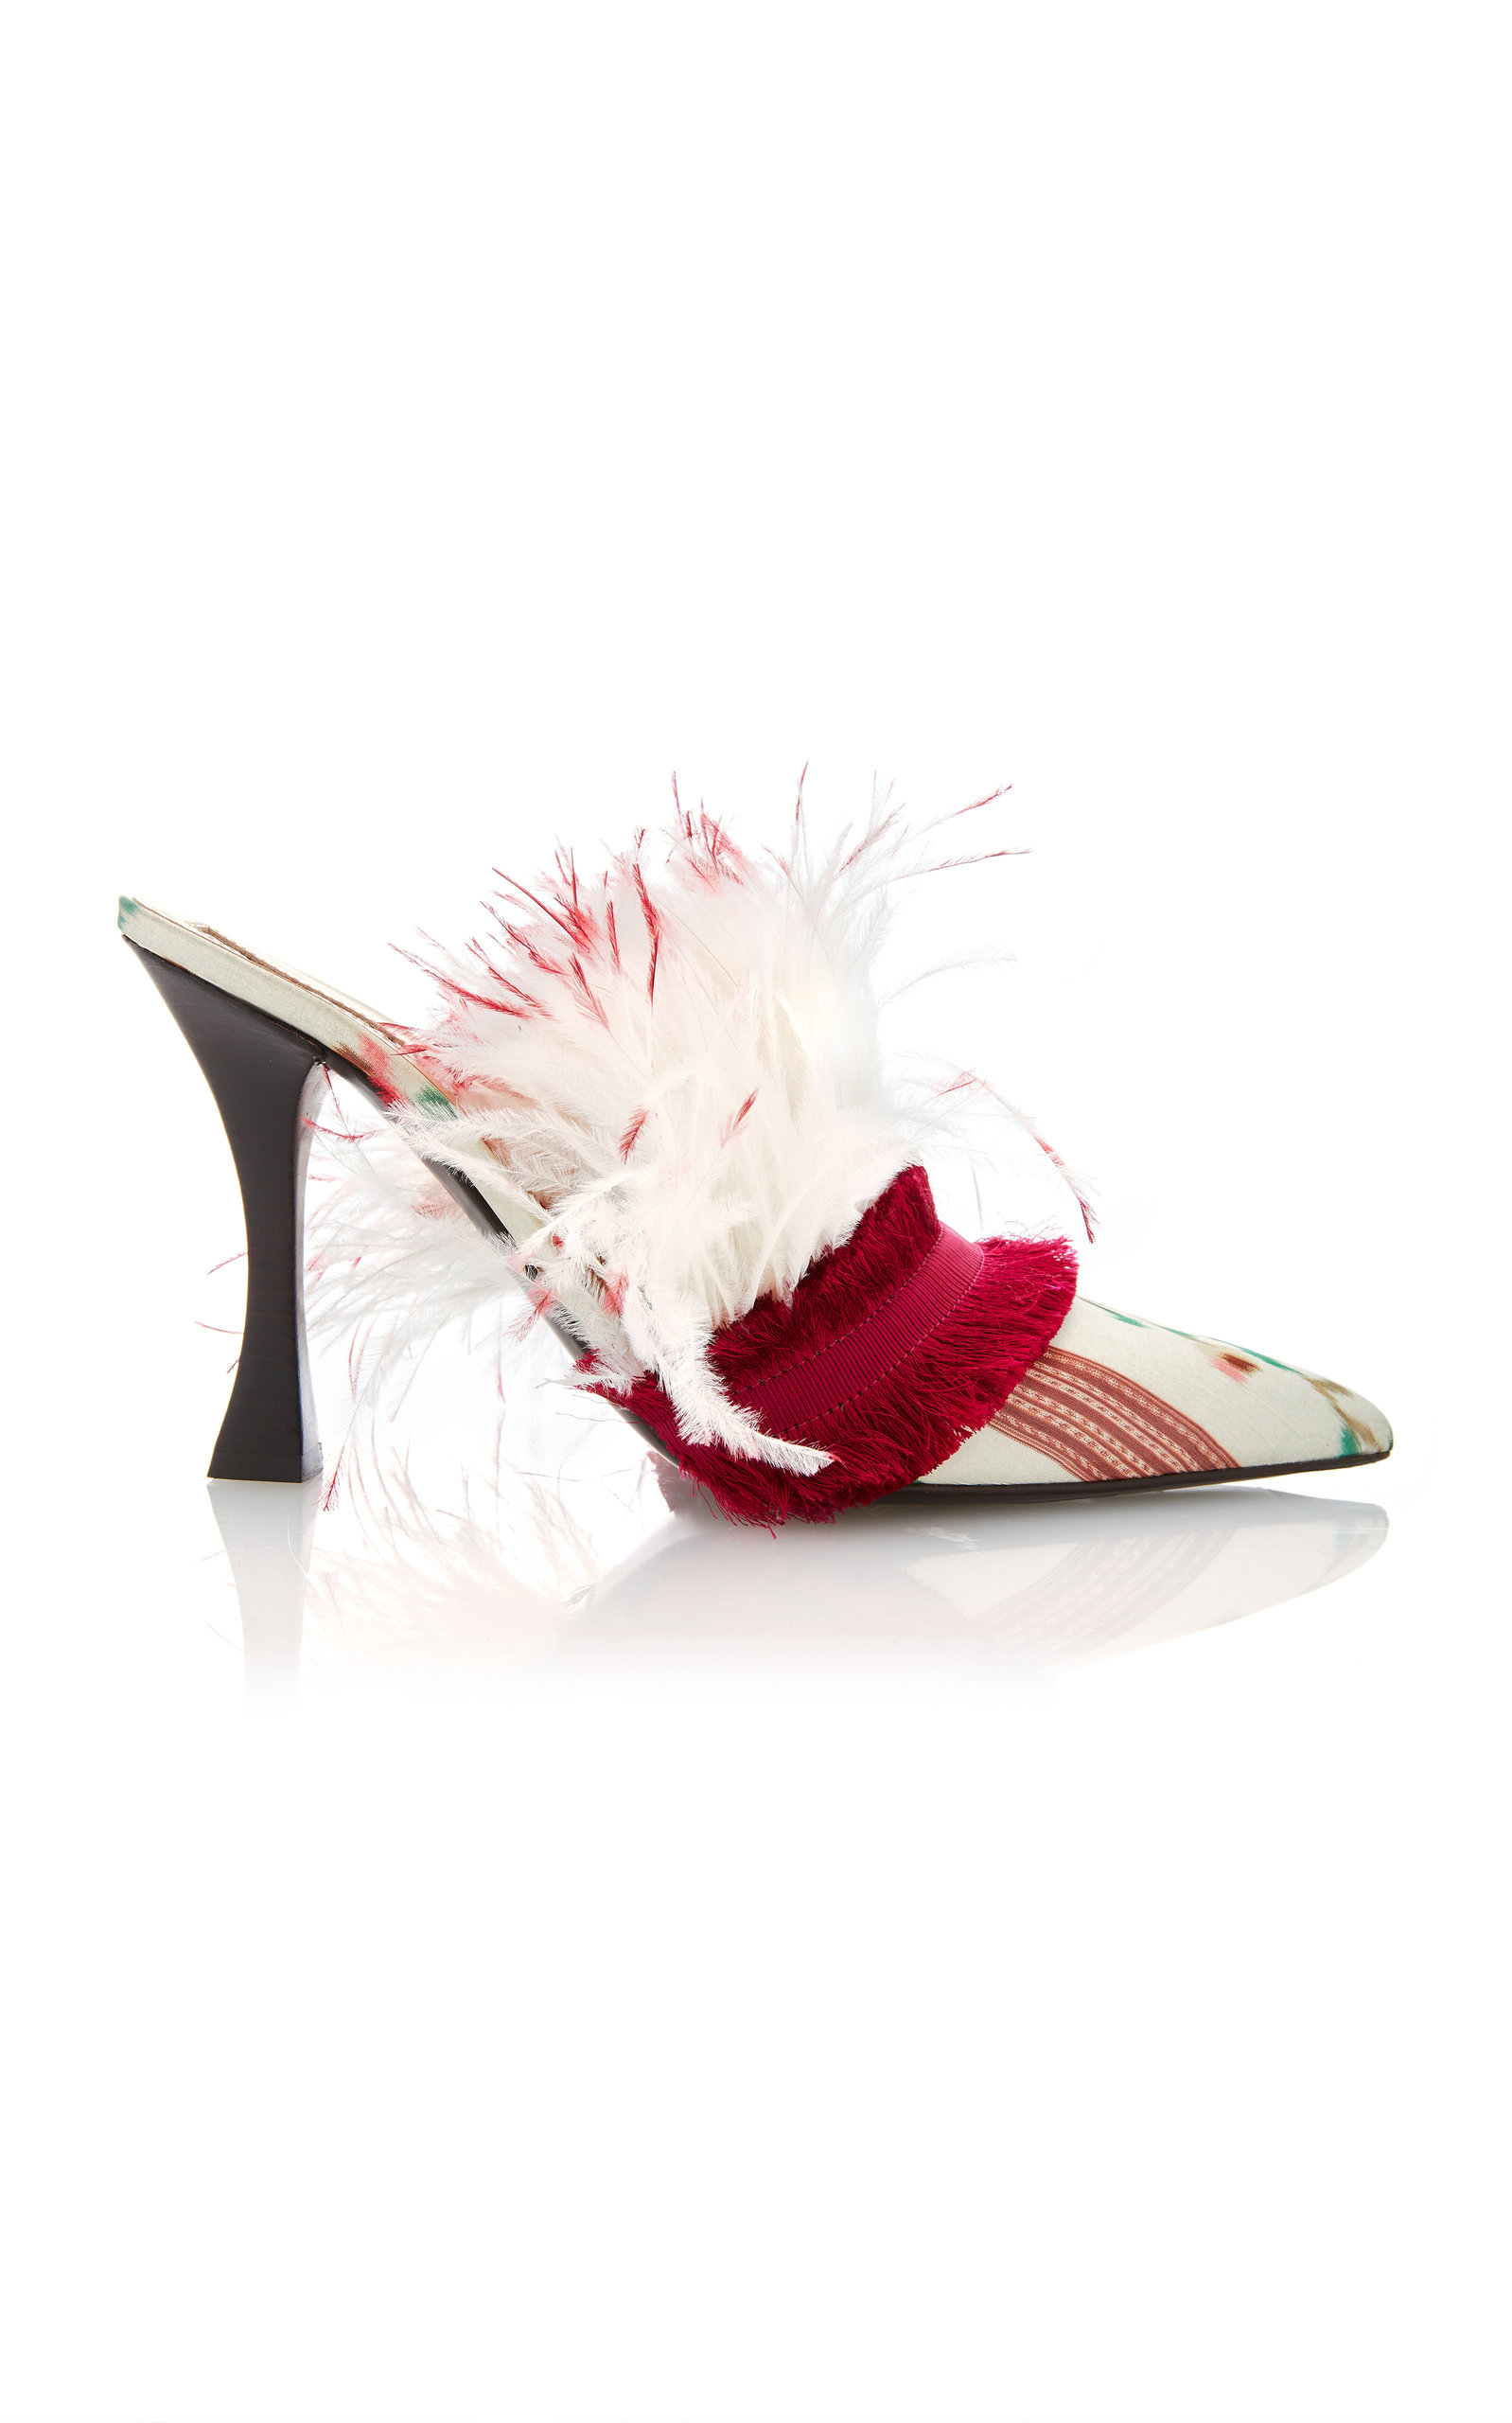 393387d942c Tabitha Simmons for Brock CollectionFeather-Embellished Printed Satin  Mules. CLOSE. Loading